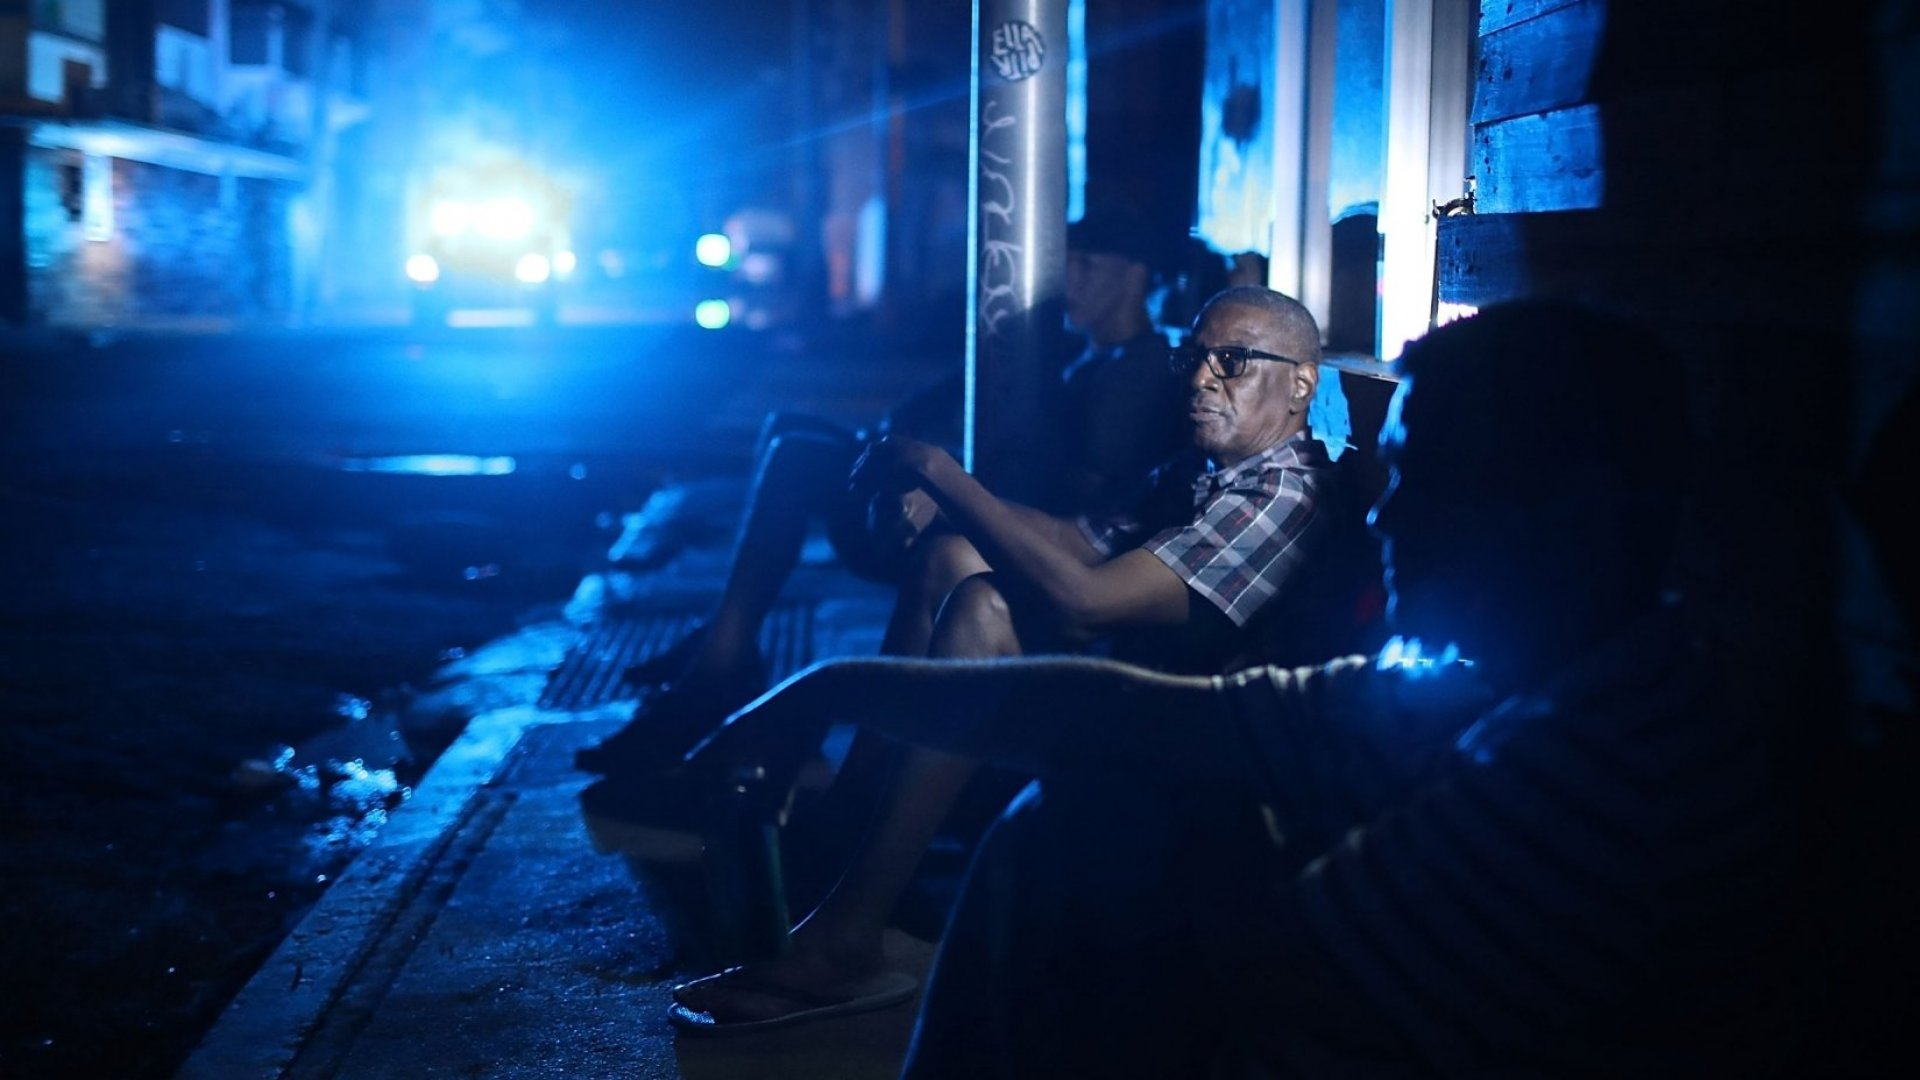 In San Juan, Puerto Rico, Jaime Degraff sits outside and tries to stay cool as people wait for the damaged electrical grid to be fixed.